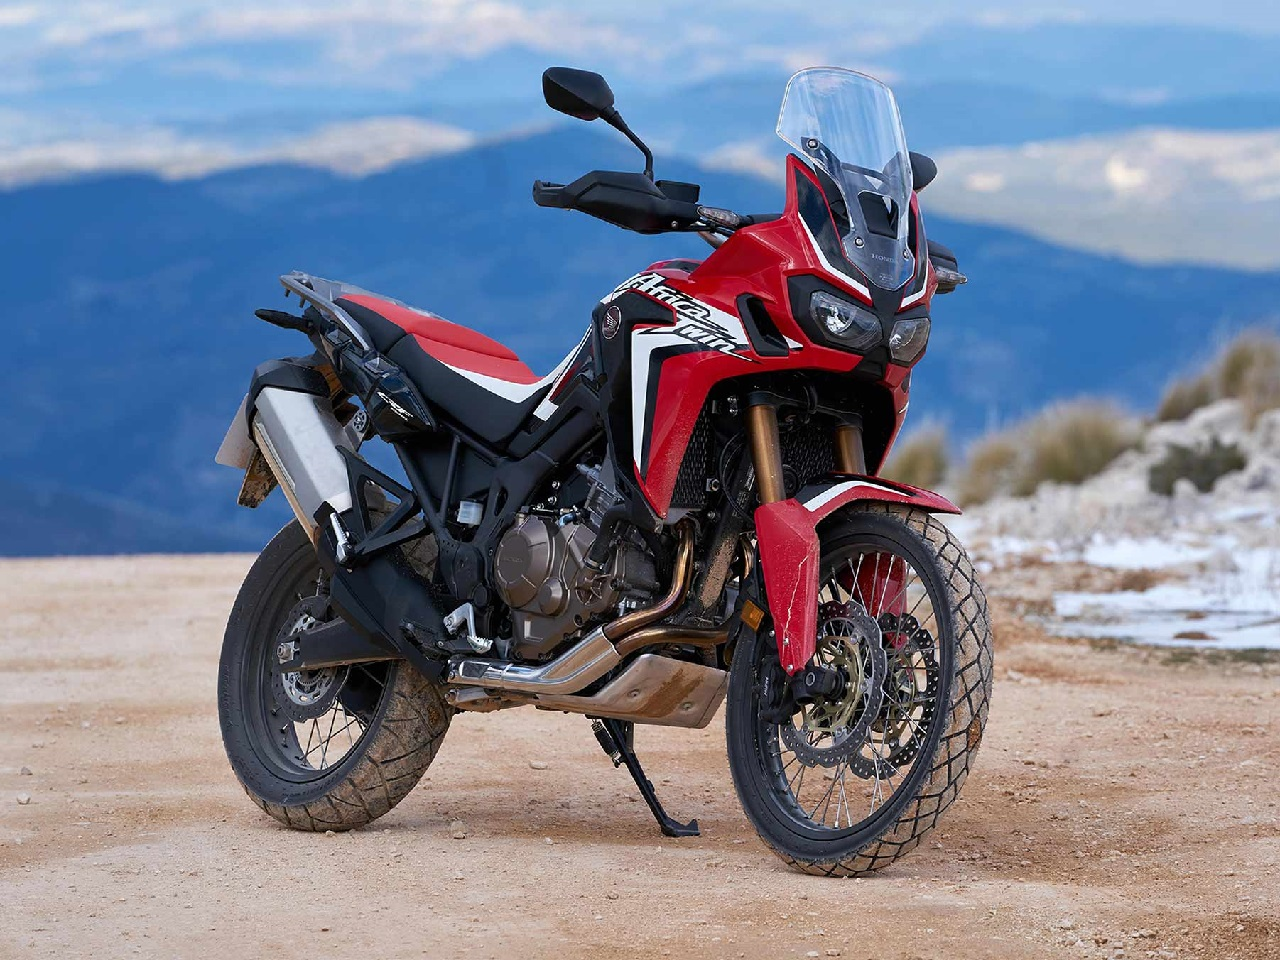 2018 honda africa twin india launch in july report. Black Bedroom Furniture Sets. Home Design Ideas